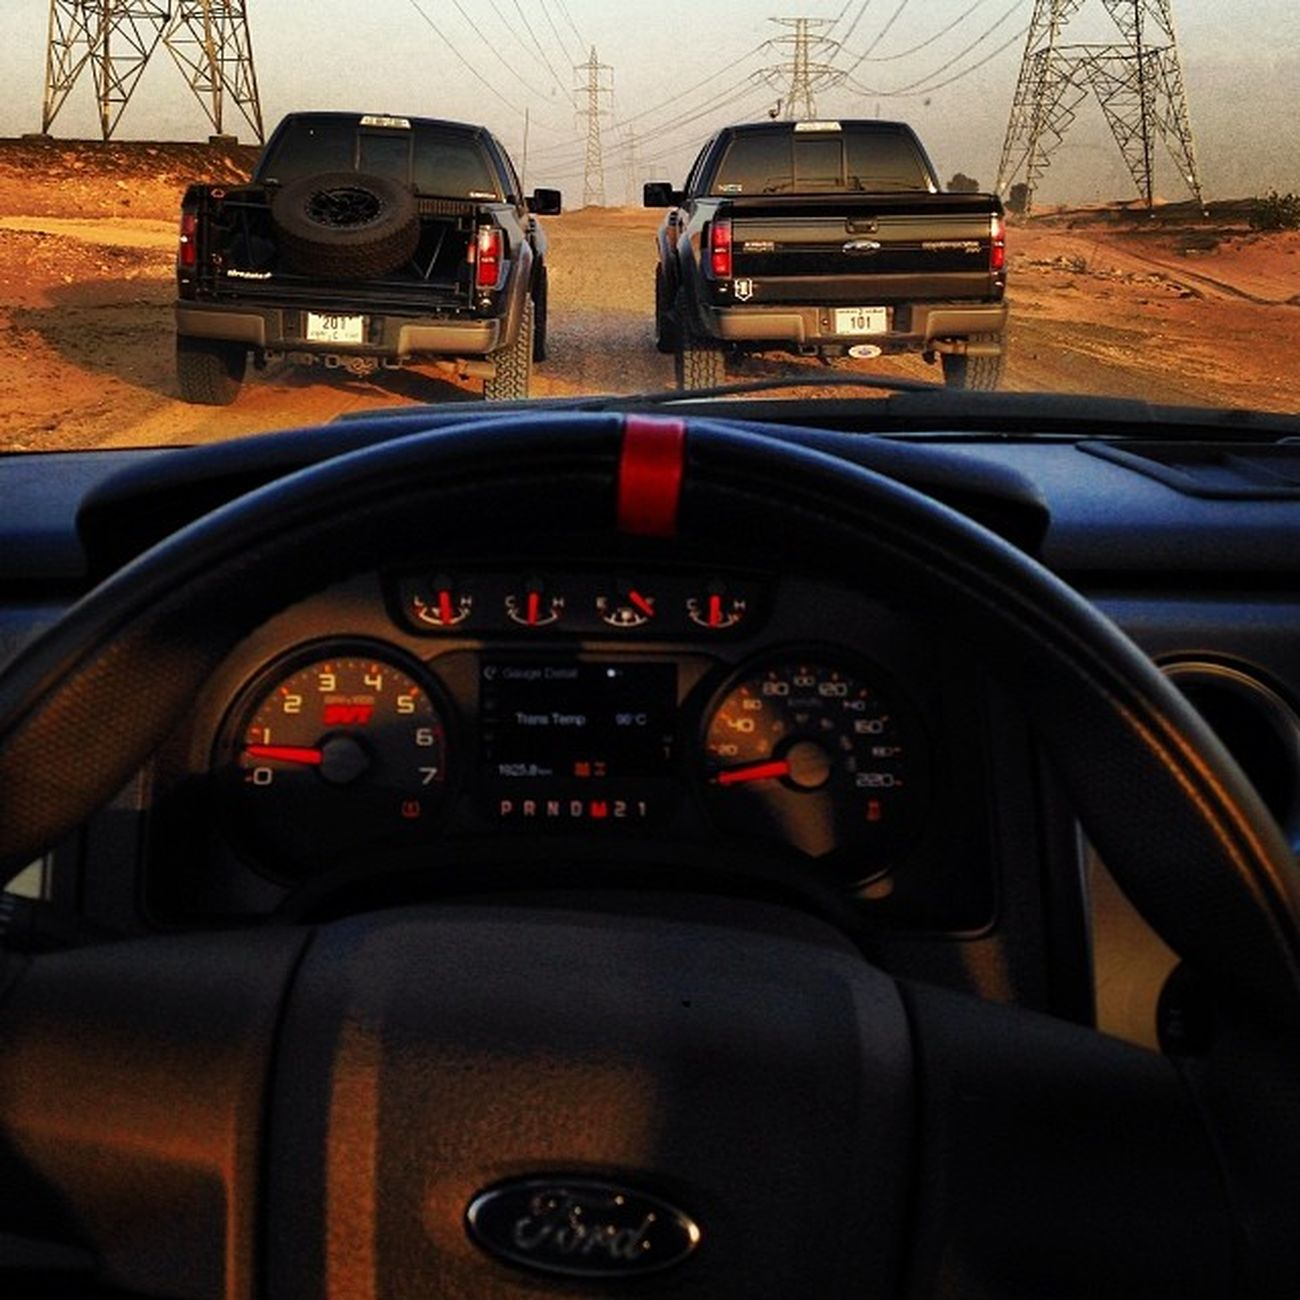 Boyz up to no good Svtraptor Fordraptor Desertnation Offroadnation truckdaily sdhq idv